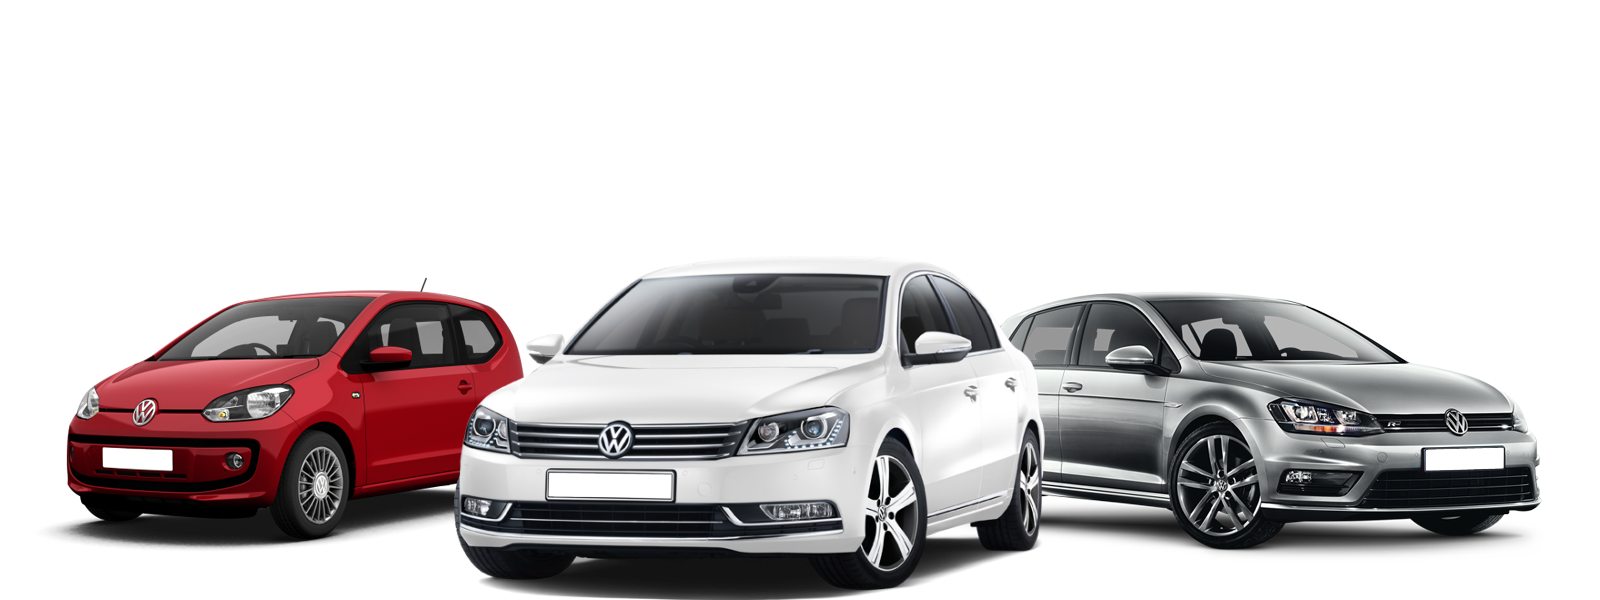 Importance Of Car Rental Services